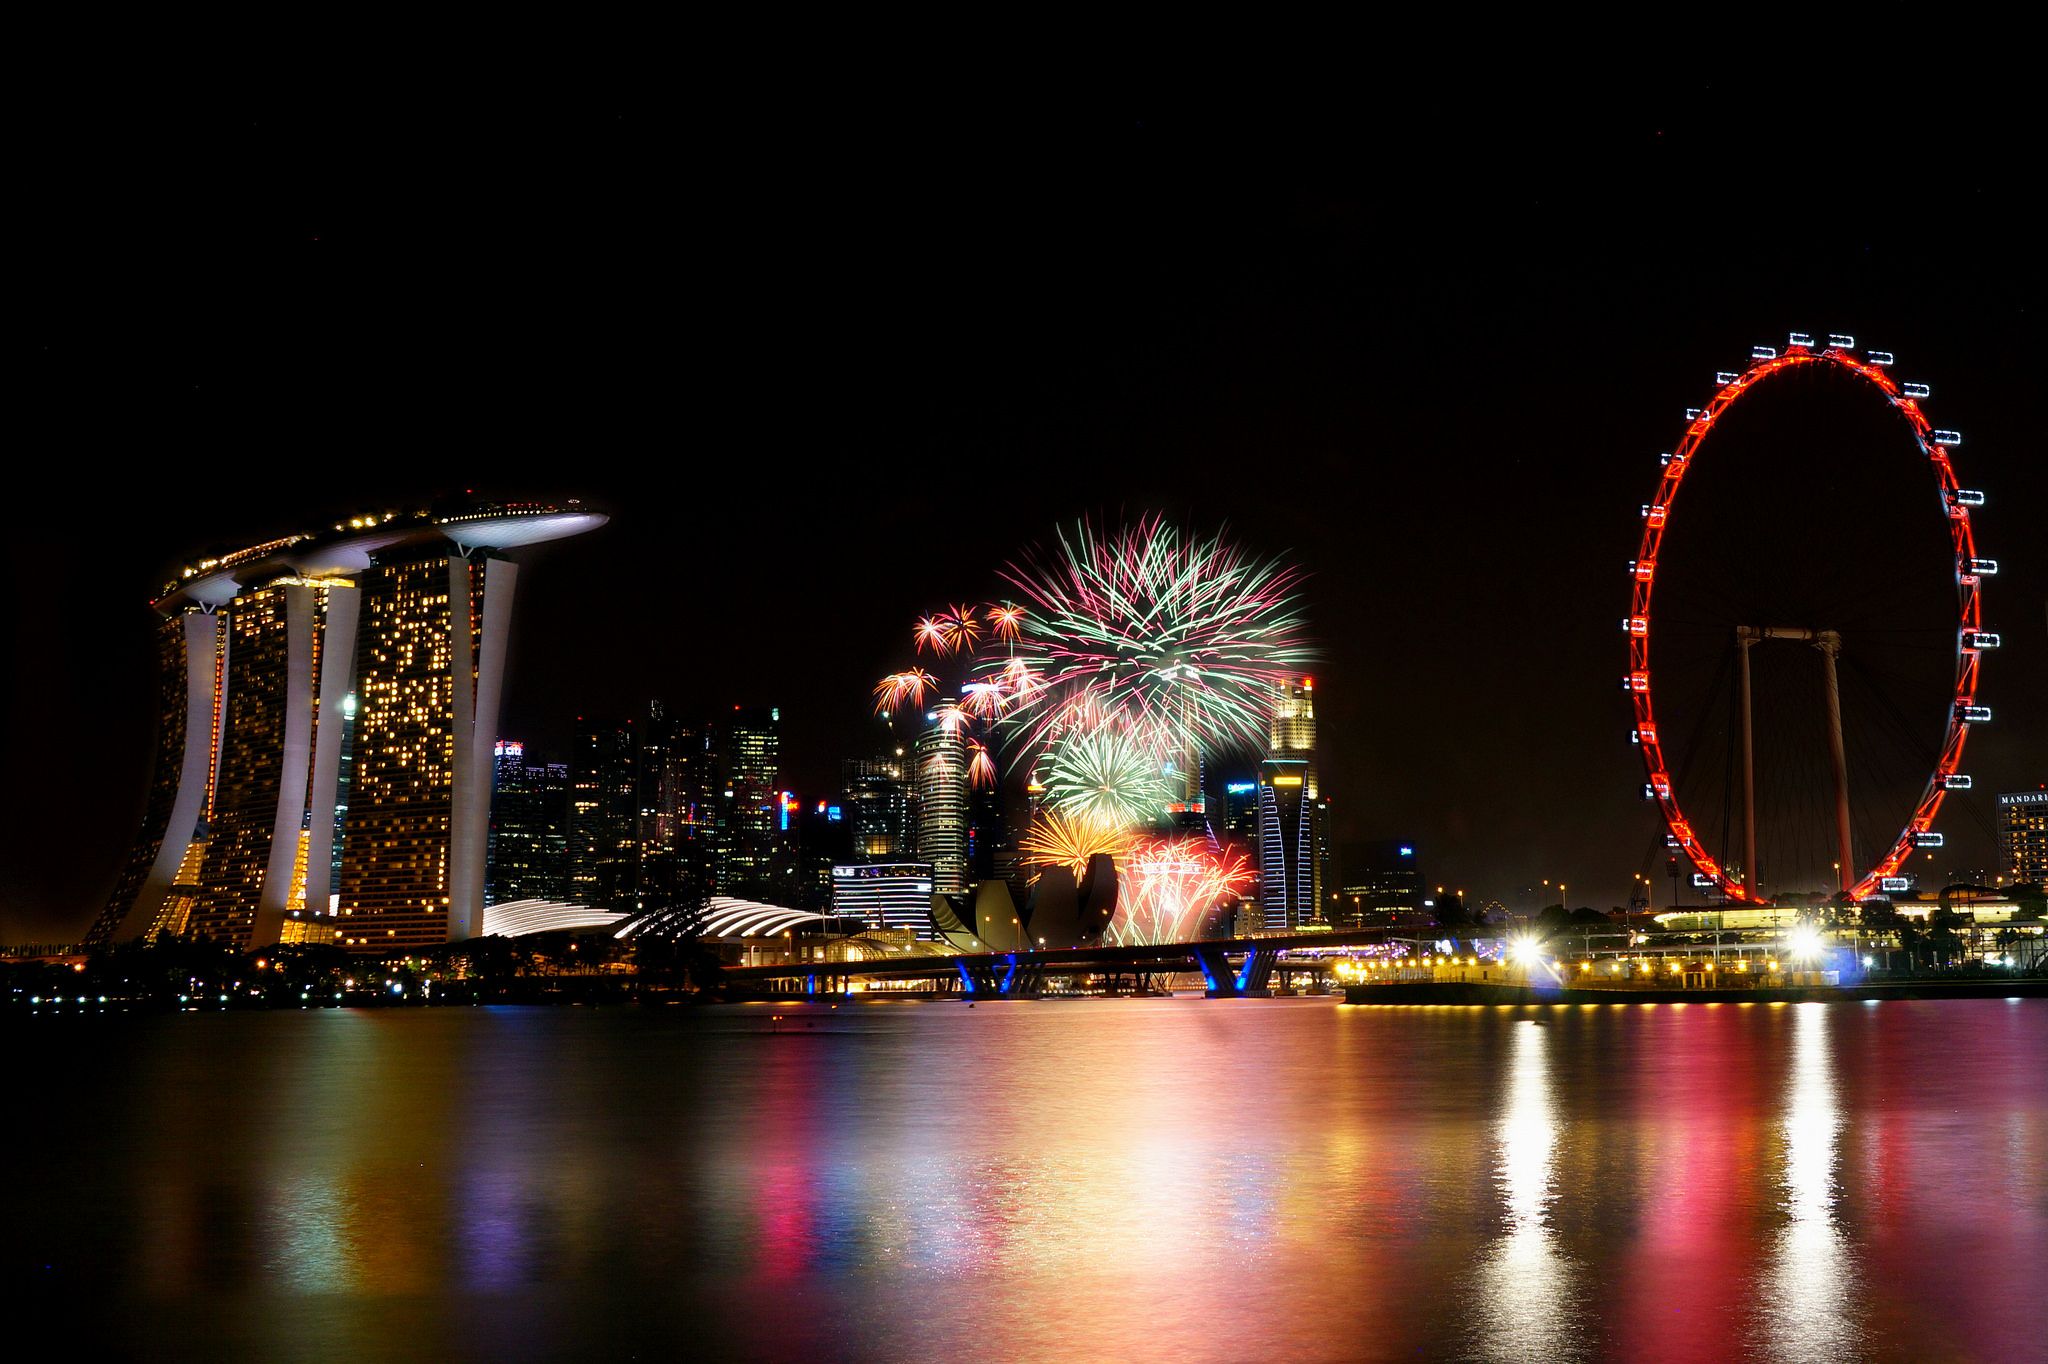 a day in singapore Full of the tourist attractions and places to visit is one day enough to visit  singapore what are the top places to see in singapore in 24 hours.